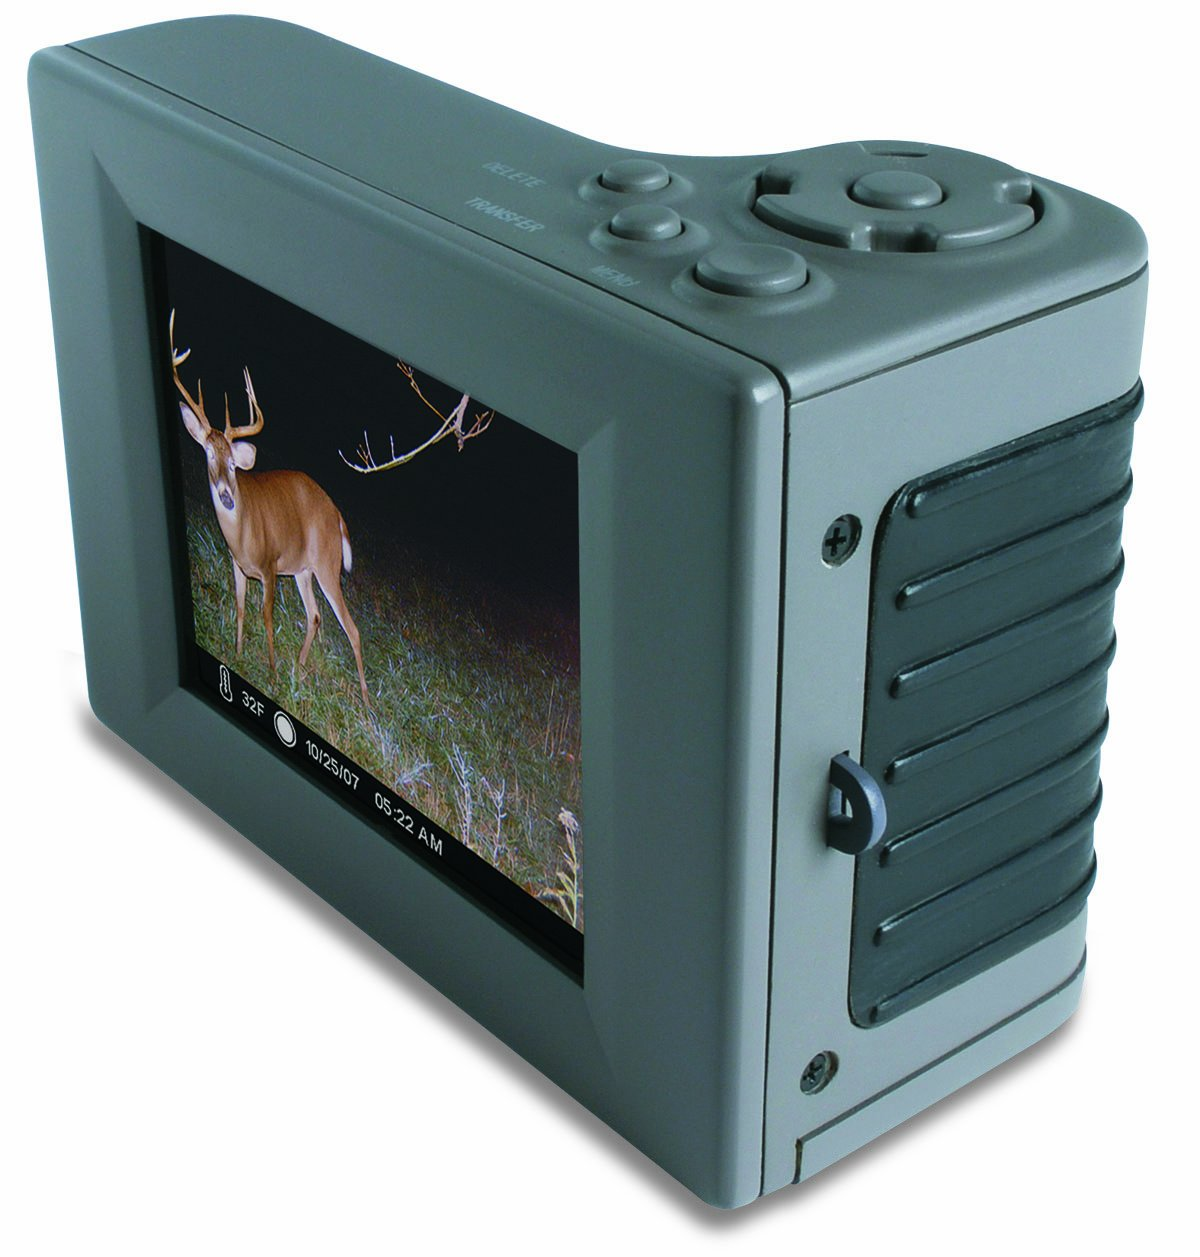 Moultrie Digital Picture Viewer, Black, 2 x 6 x 8.25